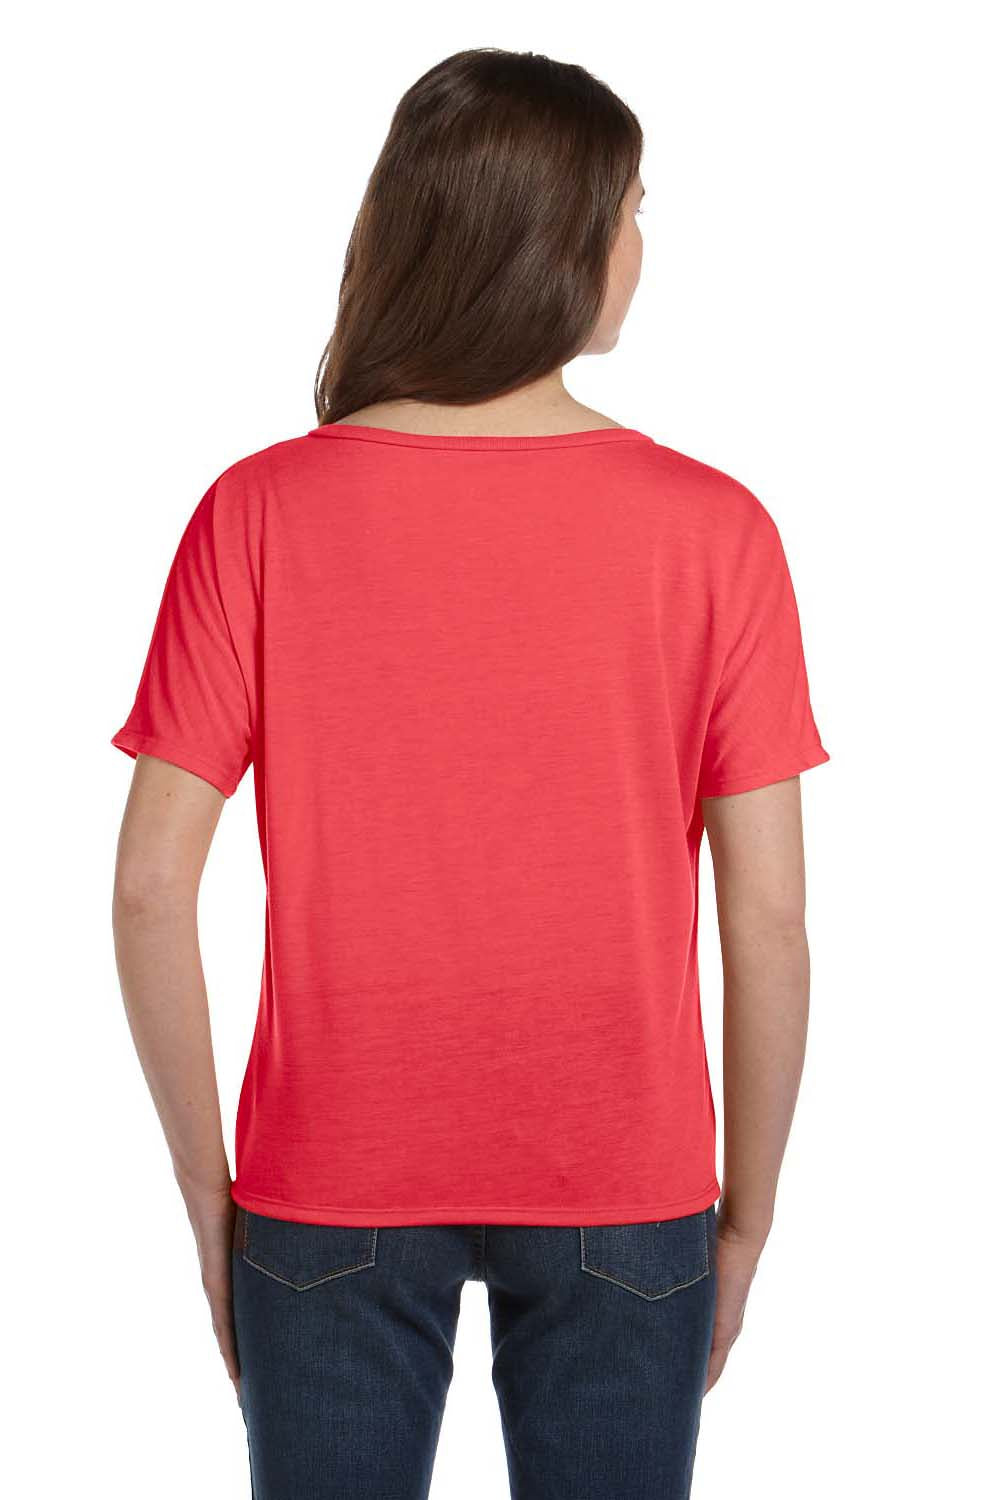 Bella + Canvas 8815 Womens Slouchy Short Sleeve V-Neck T-Shirt Coral Orange Back